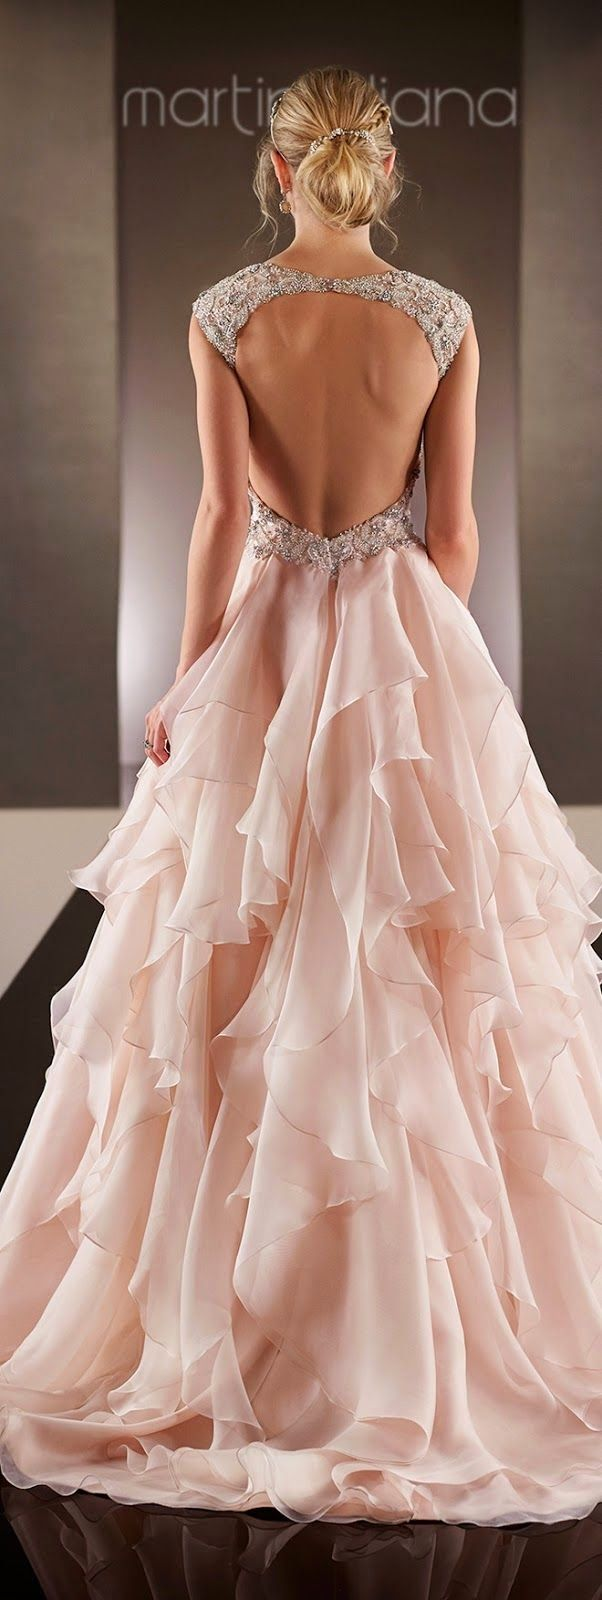 Pin de Mackenzie en Wedding | Pinterest | Ph, Vestiditos y Novios